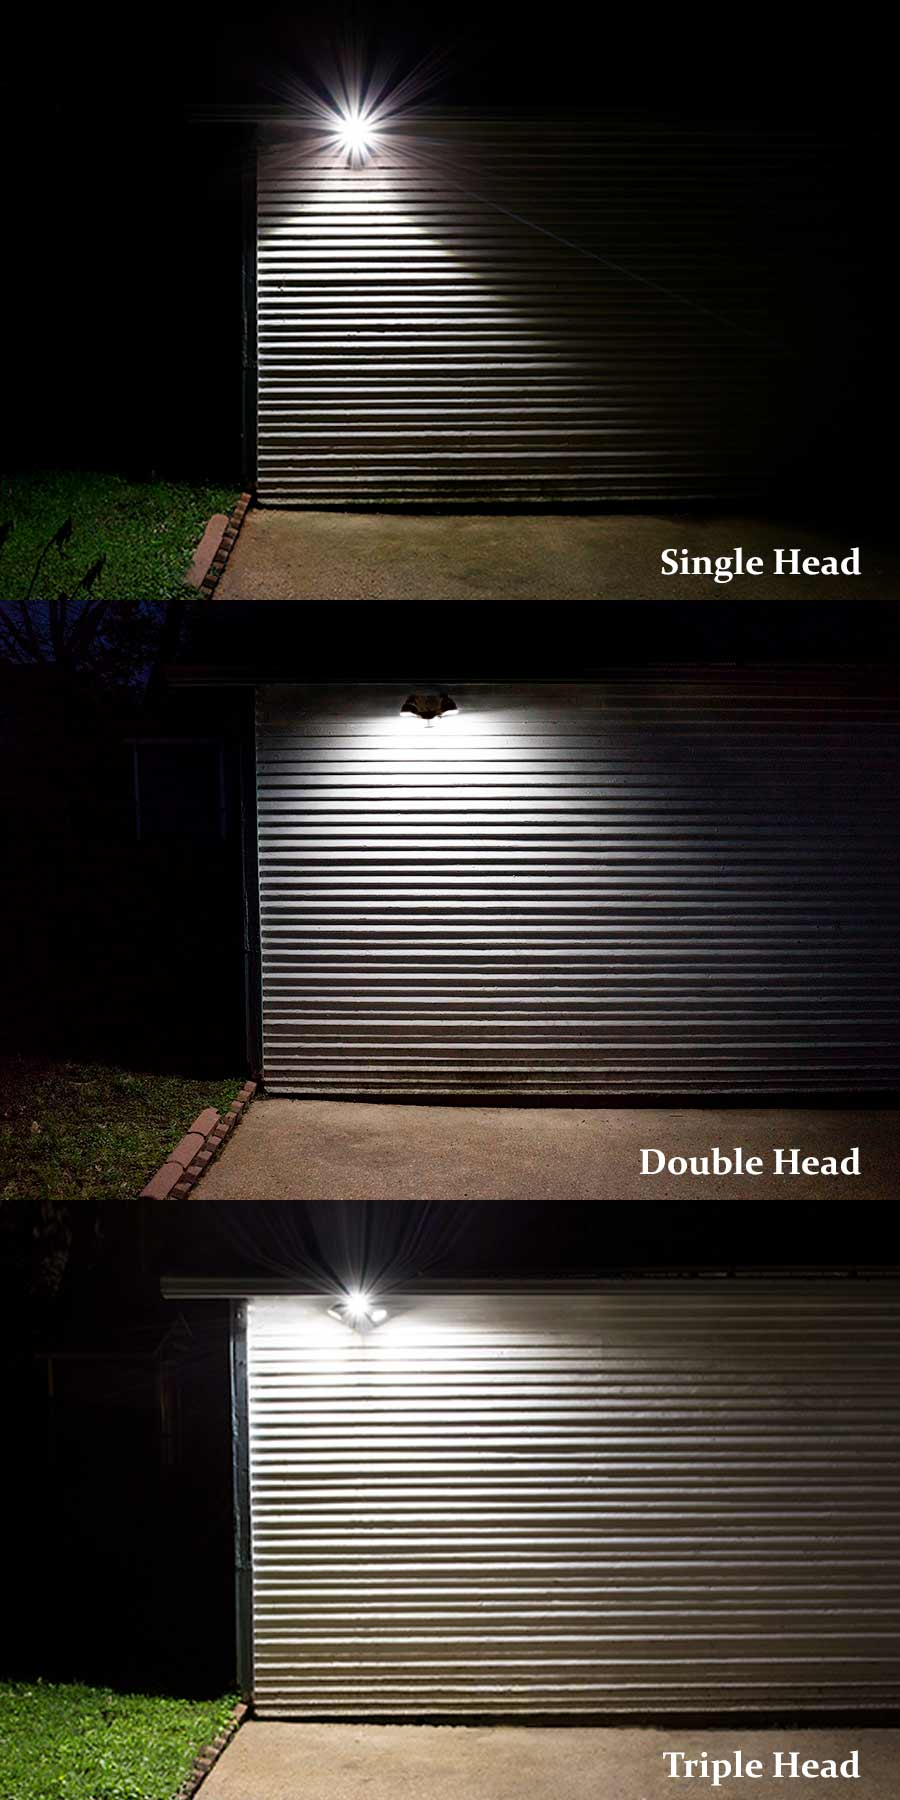 Installation at the head with led lighting - Led Motion Sensor Light 2 Head Security Light 20w Comparison Of Single Double And Triple Light Heads